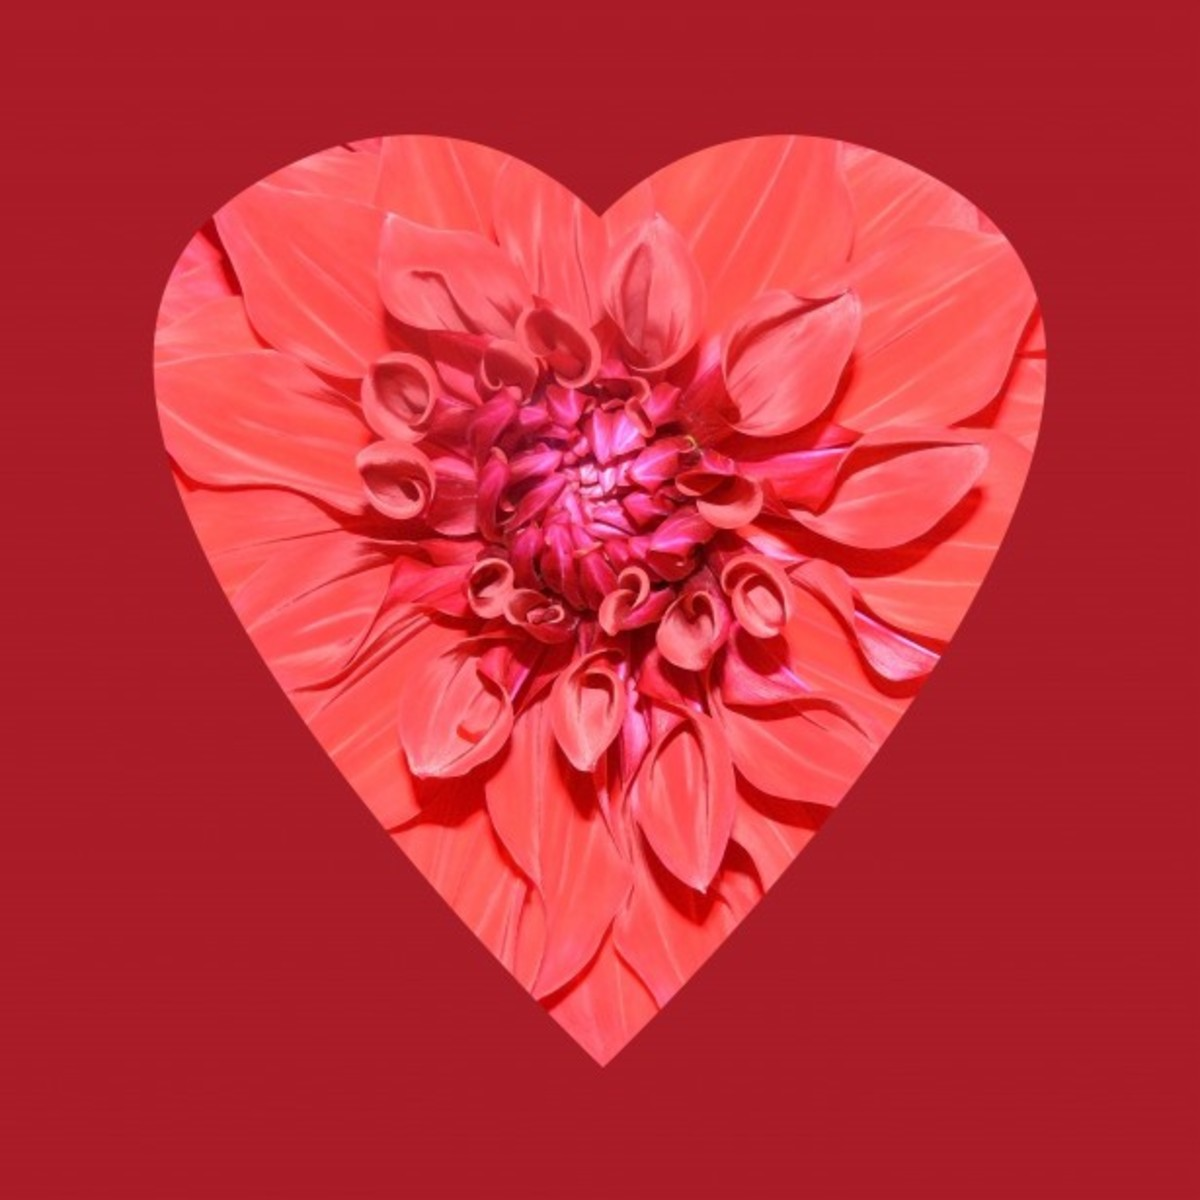 Flower Petal Red Heart Picture